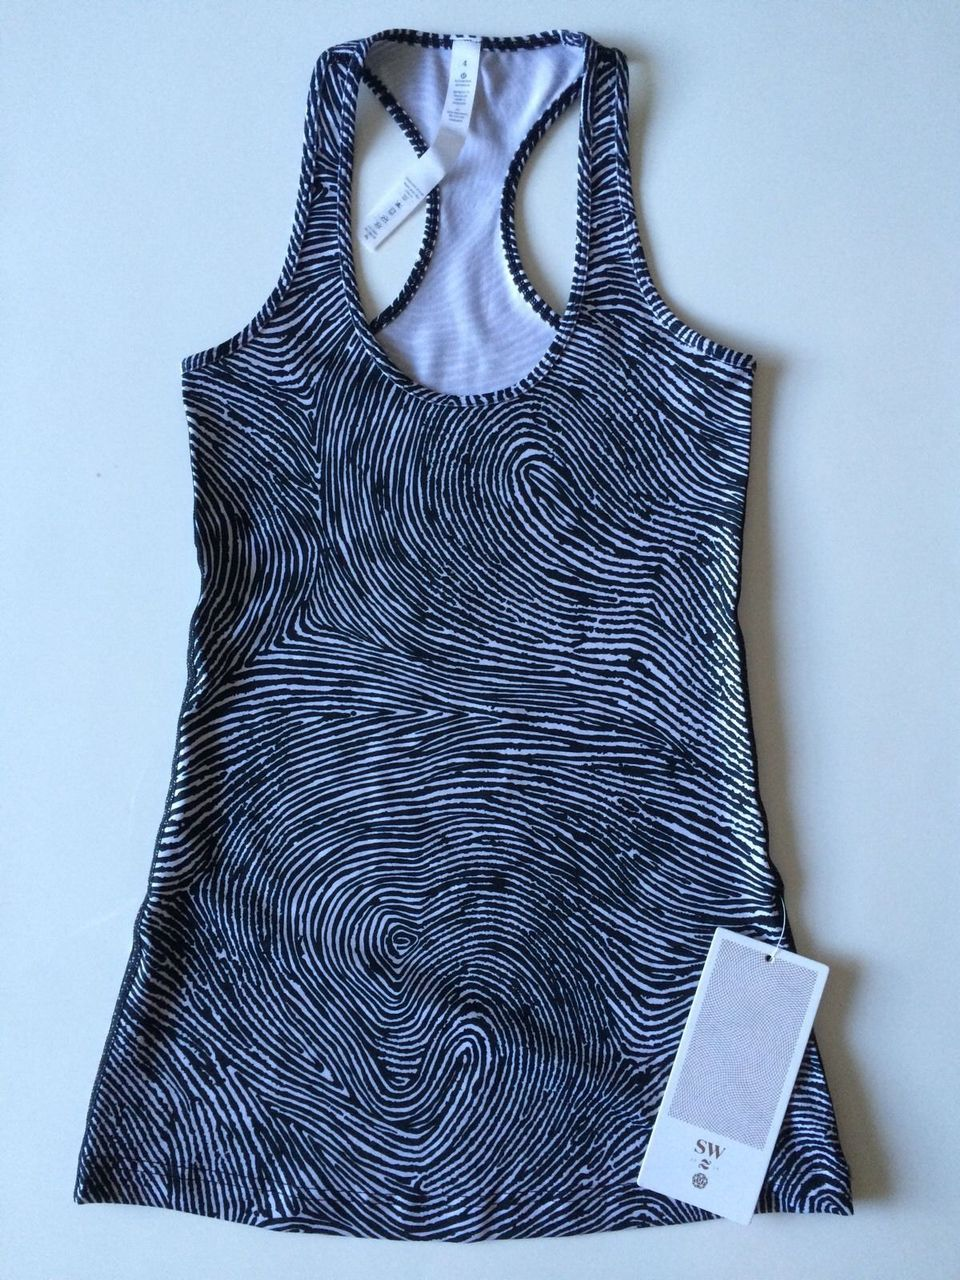 Lululemon Cool Racerback - 2016 Seawheeze - Who Done It Black